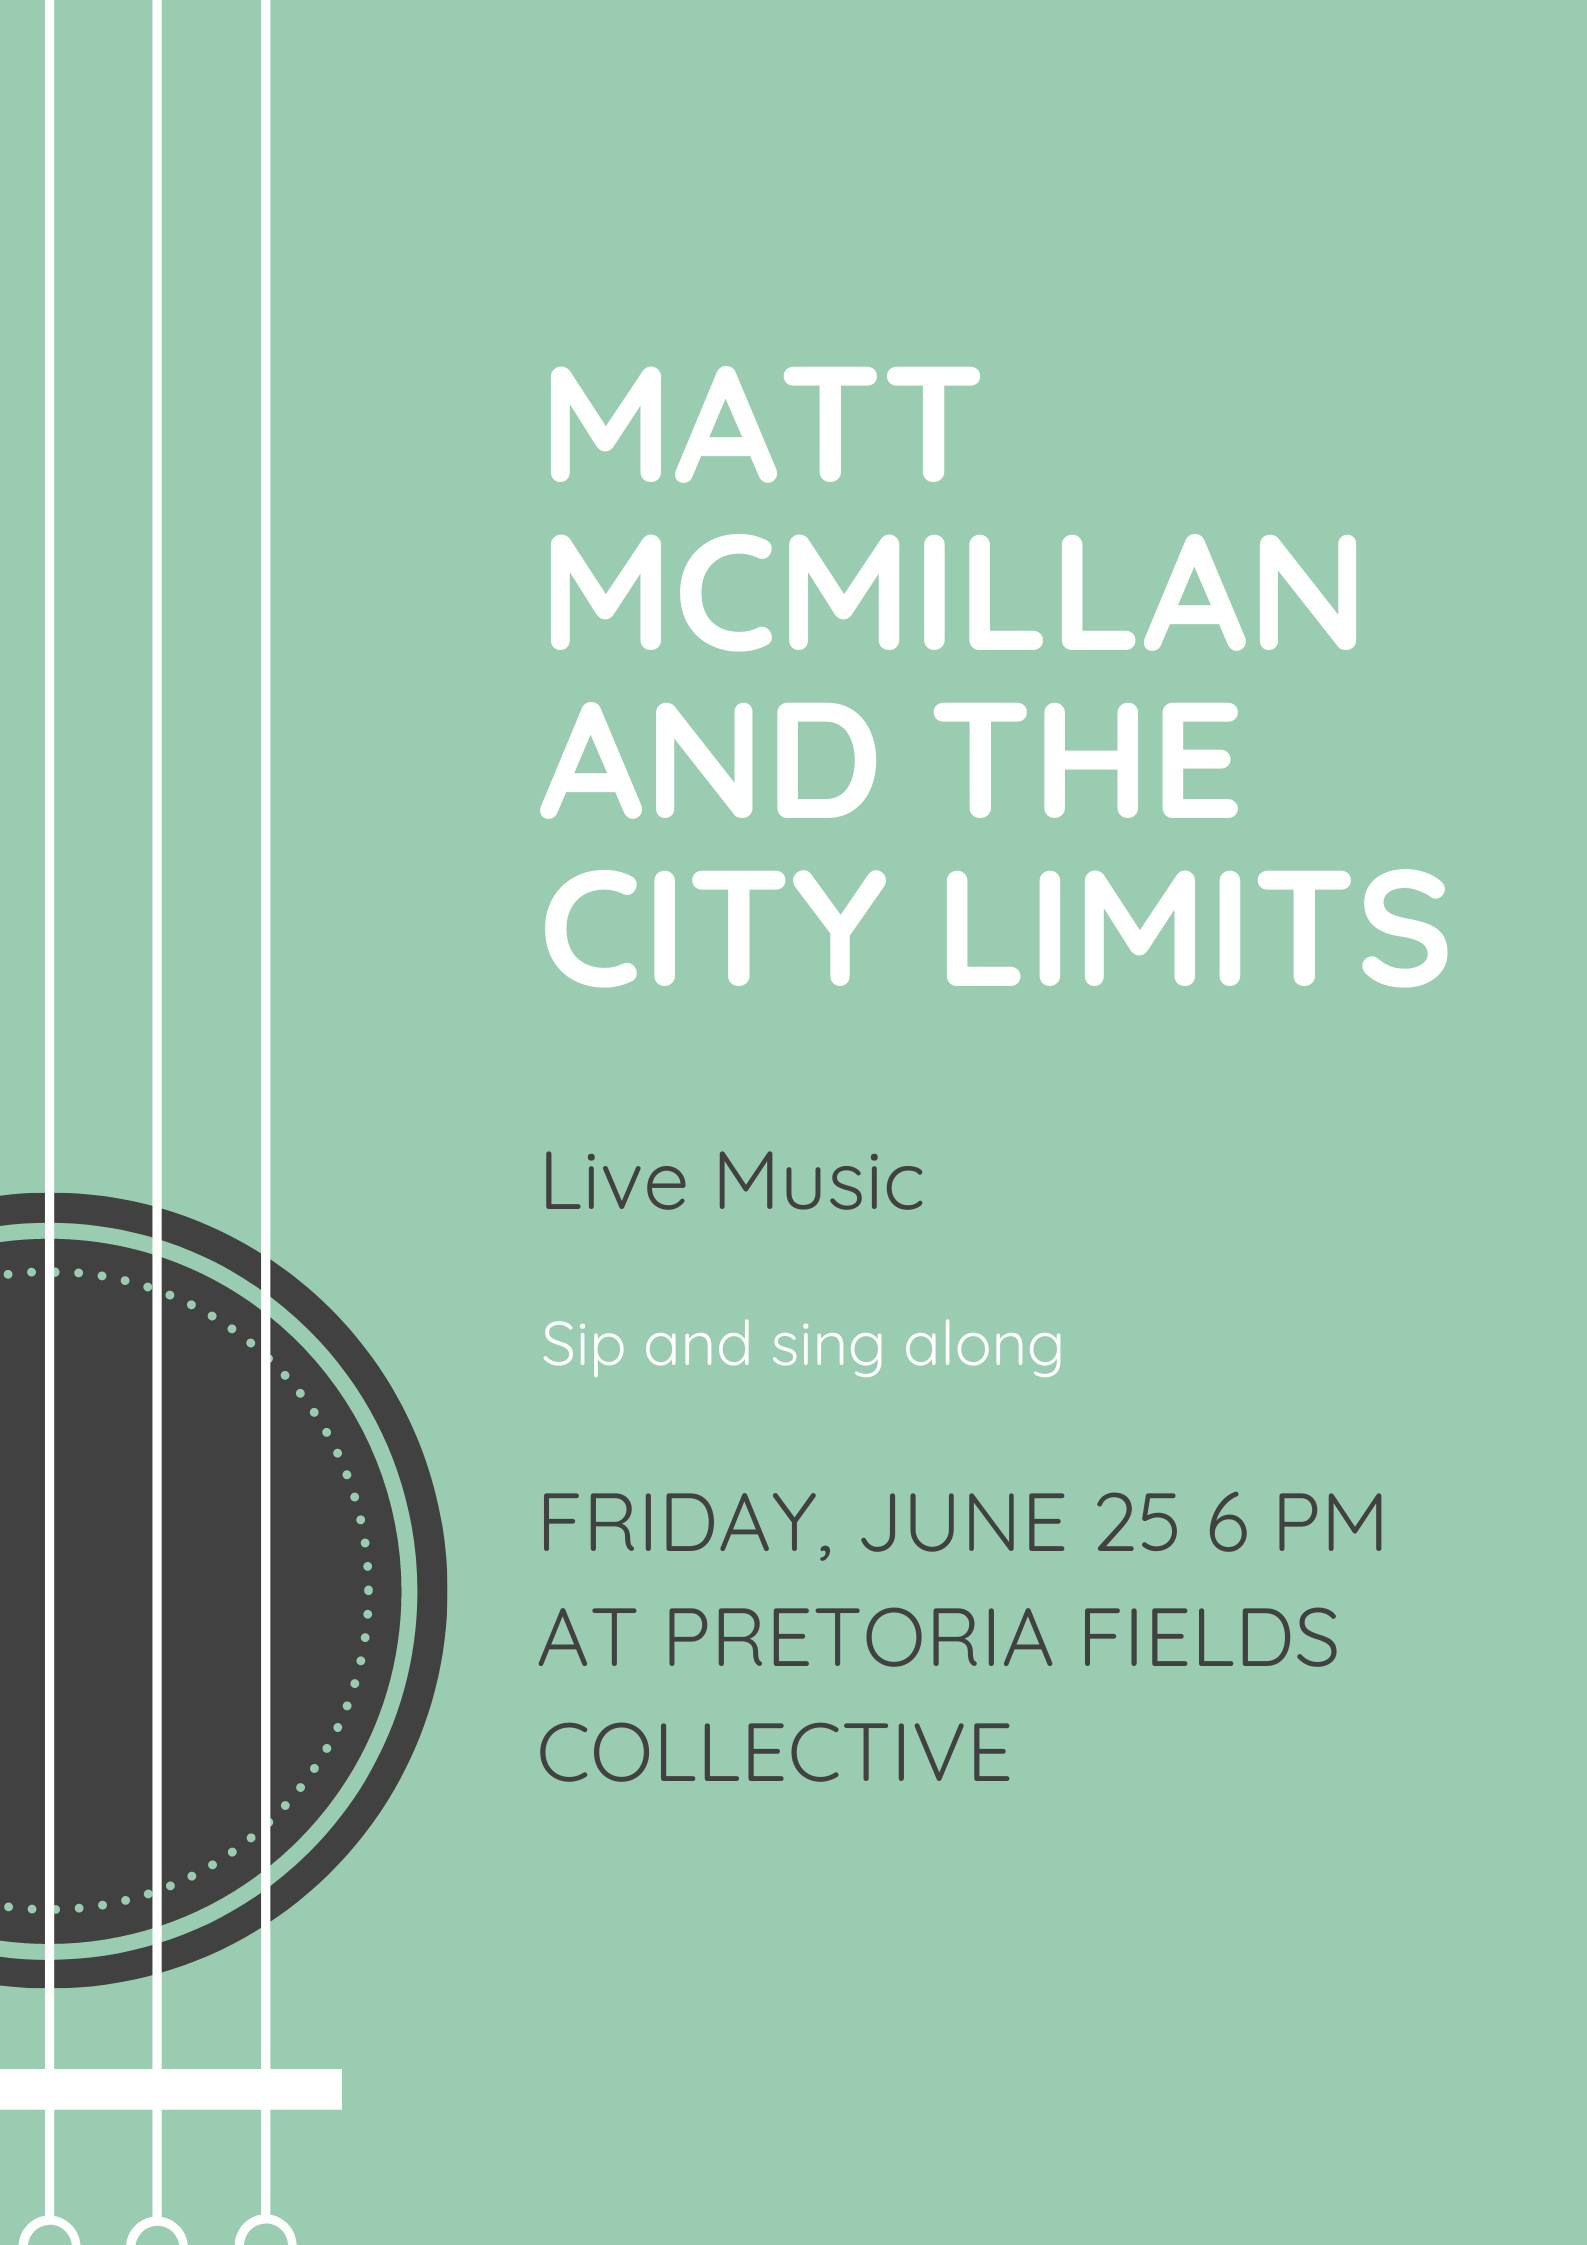 Live Music at Pretoria Fields by Matt McMillan and The City Limits